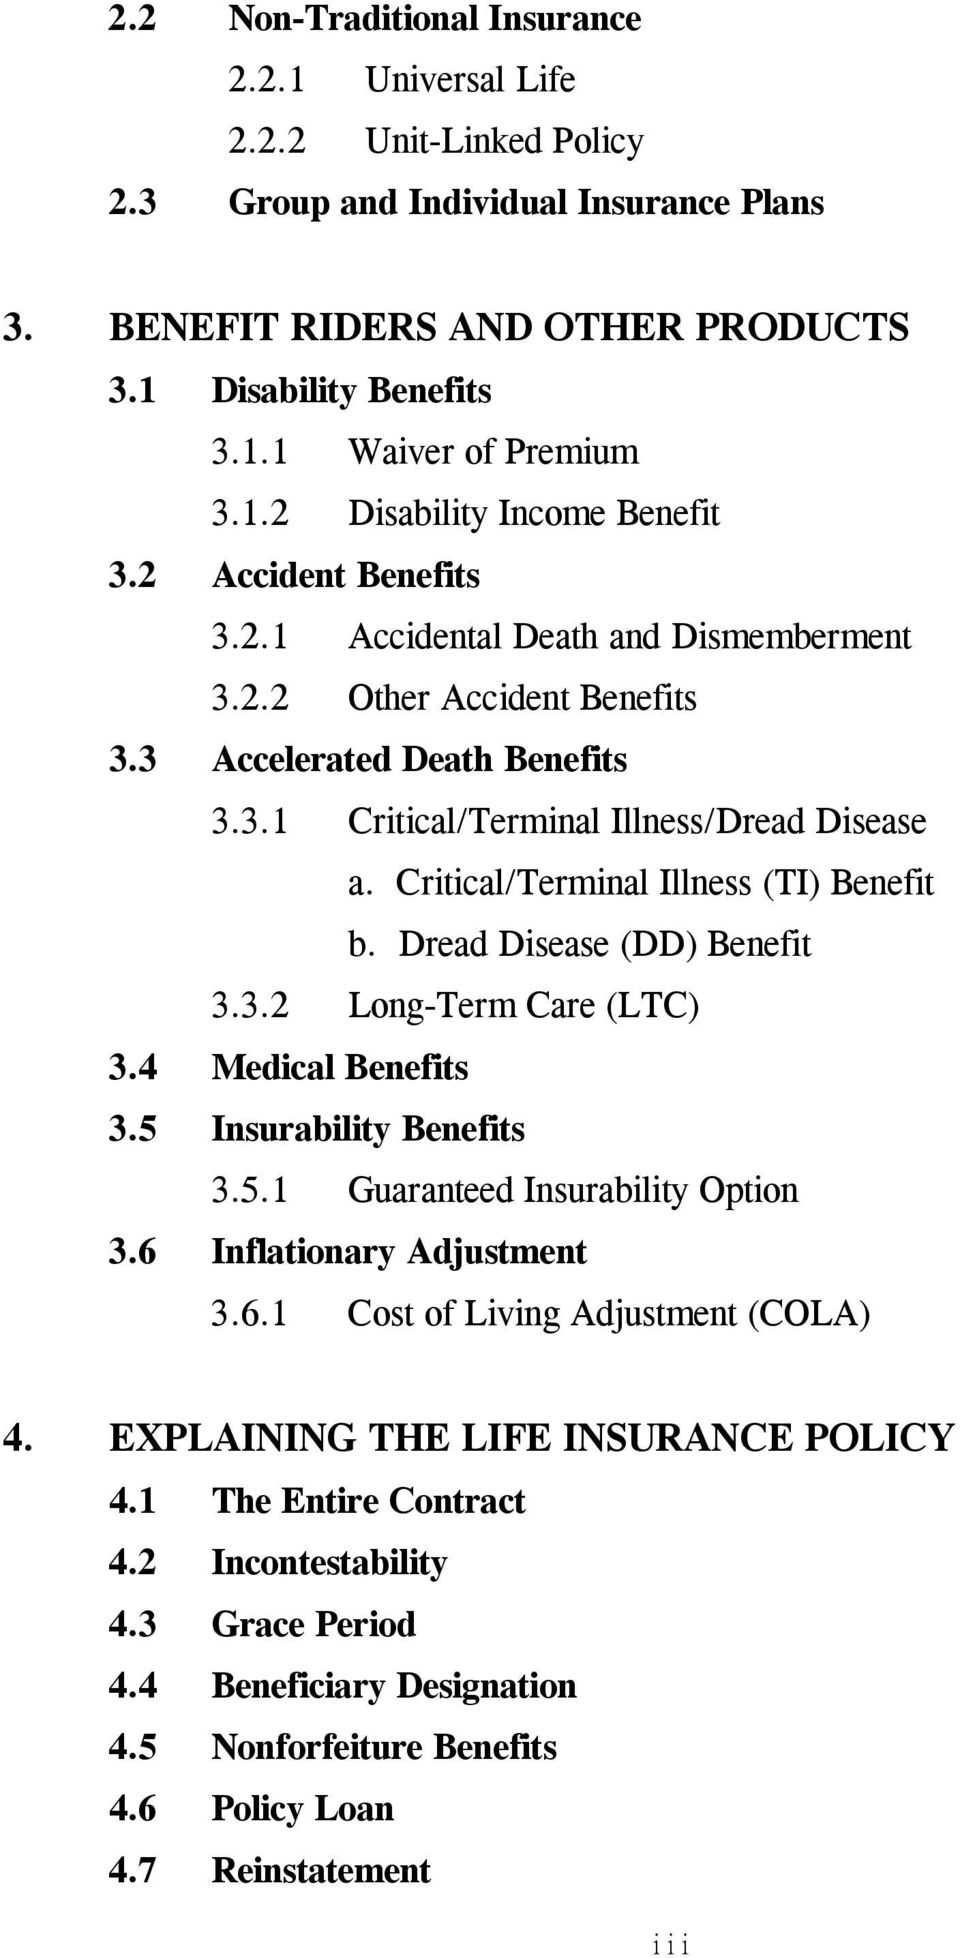 Critical/Terminal Illness (TI) Benefit b. Dread Disease (DD) Benefit 3.3.2 Long-Term Care (LTC) 3.4 Medical Benefits 3.5 Insurability Benefits 3.5.1 Guaranteed Insurability Option 3.